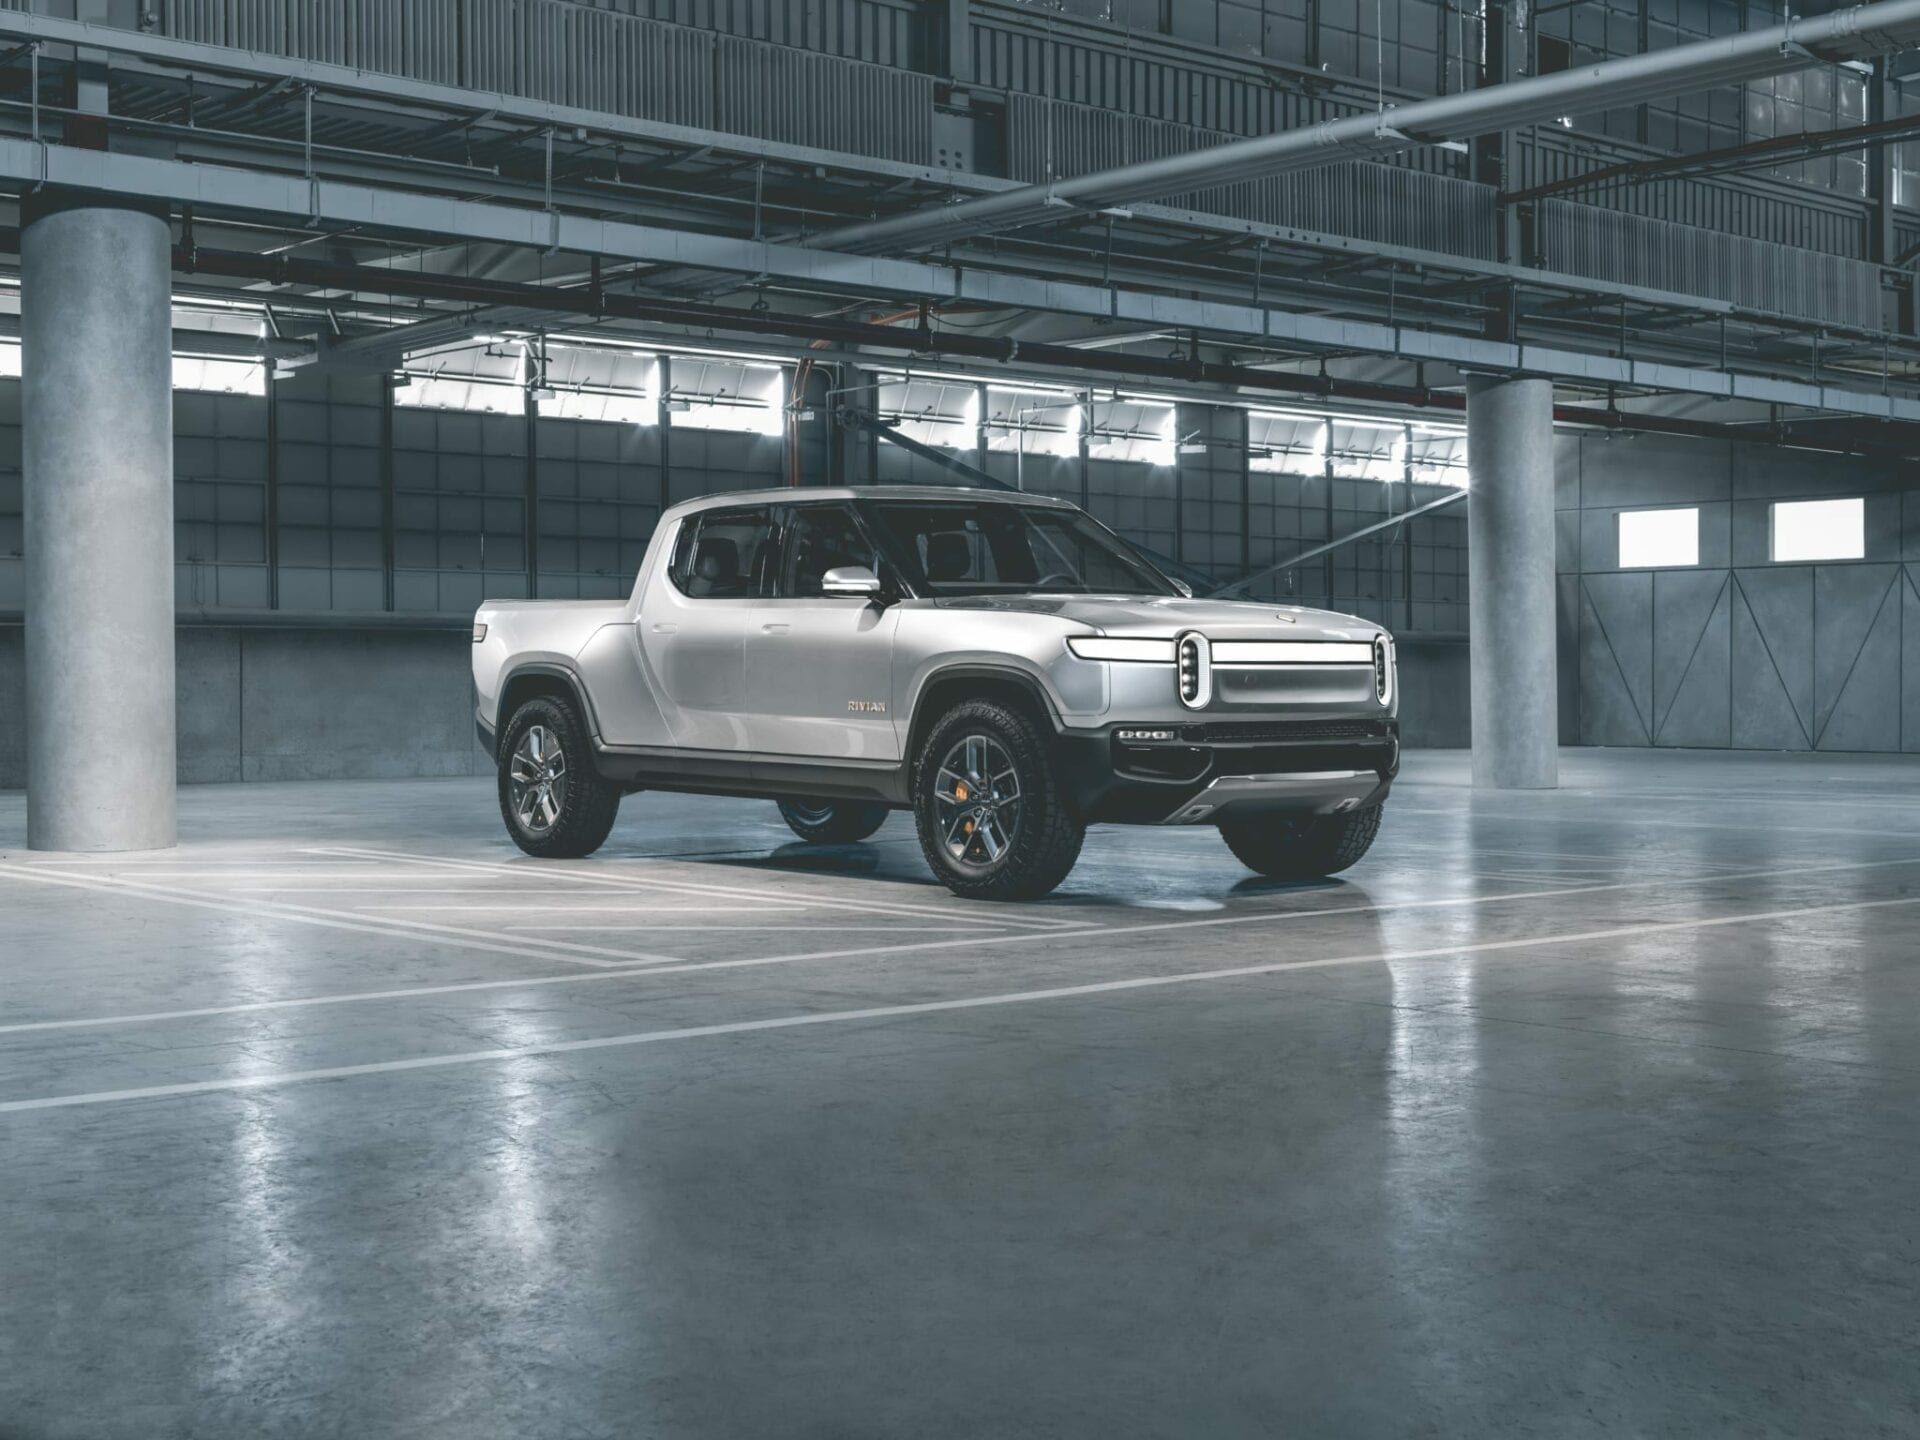 Rivian pick-up SUV